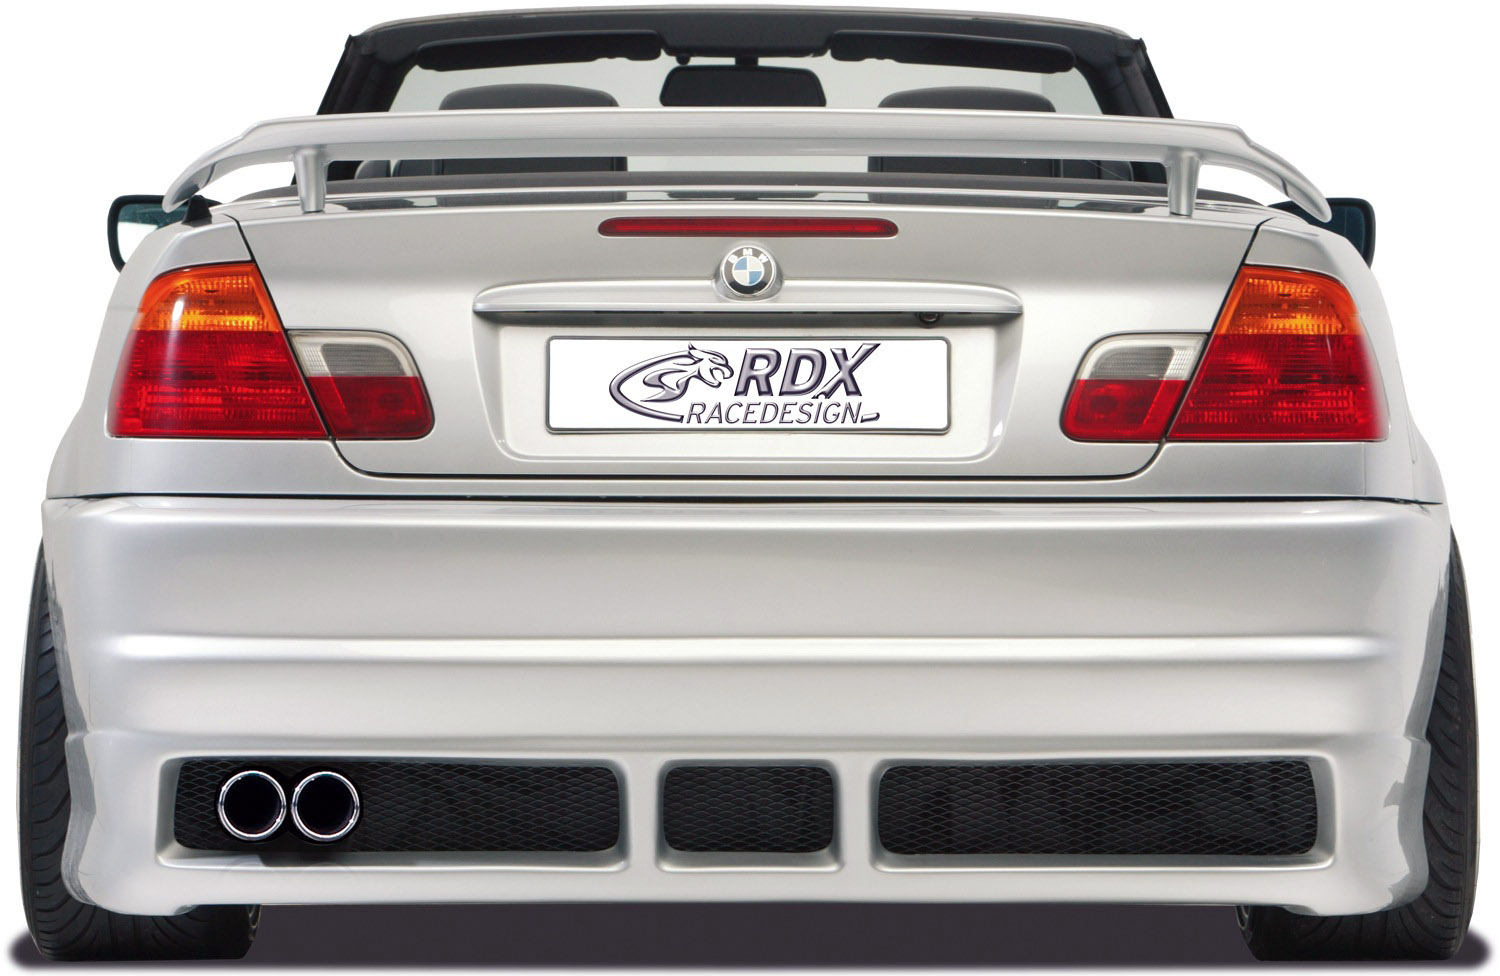 rdx racedesign offers complete programme for the bmw e46. Black Bedroom Furniture Sets. Home Design Ideas